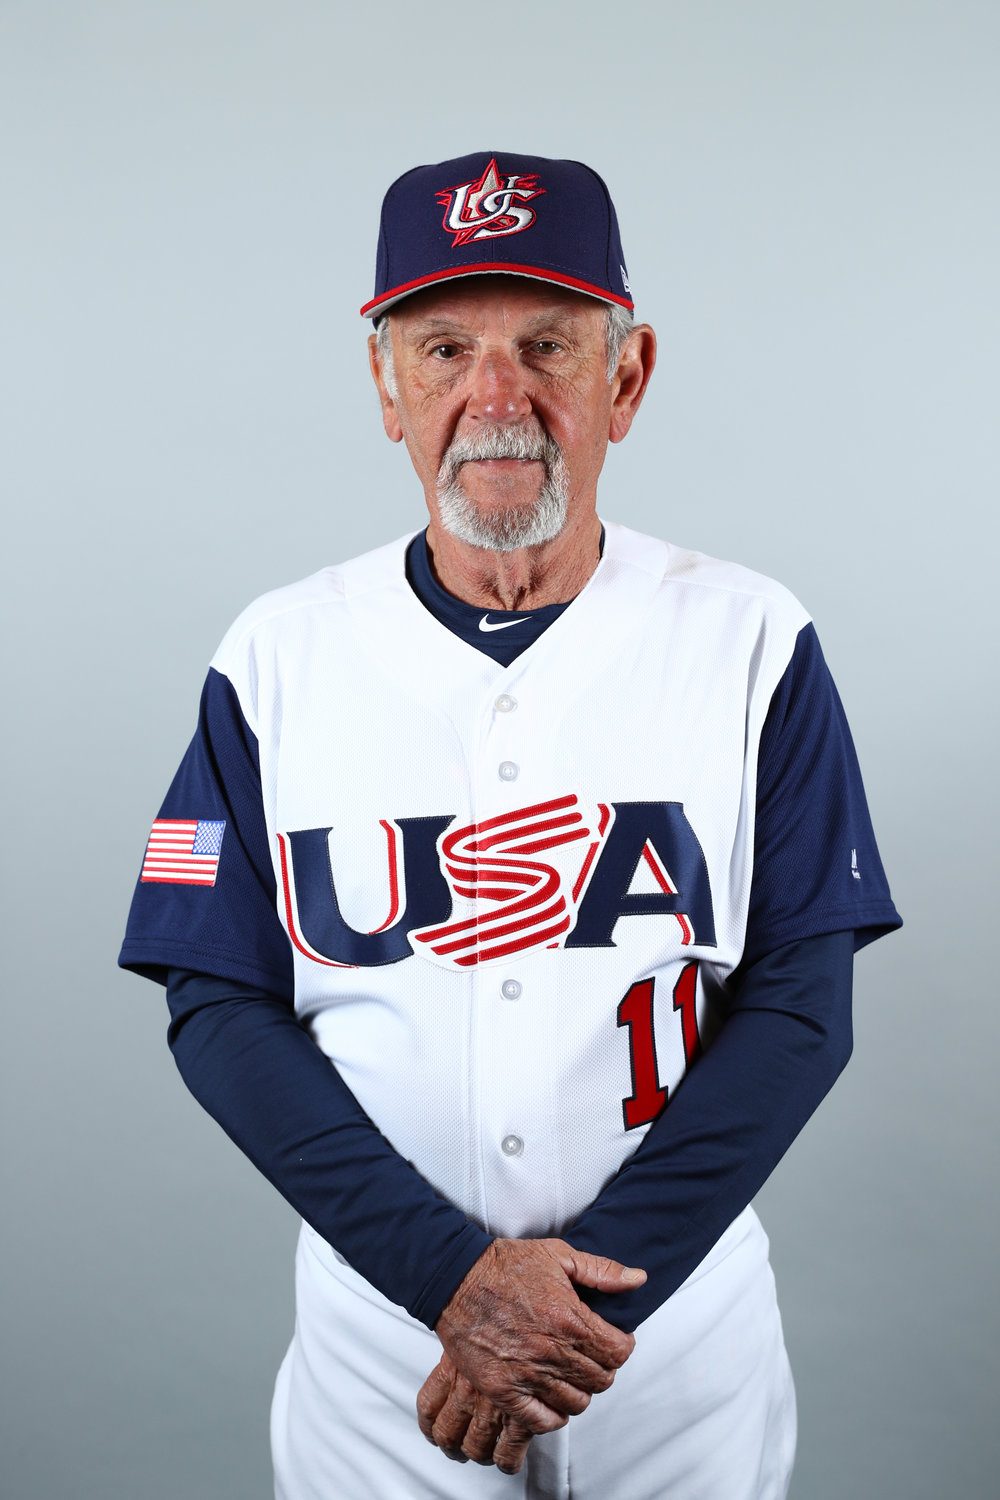 Leyland_Jim_Headshot.jpg